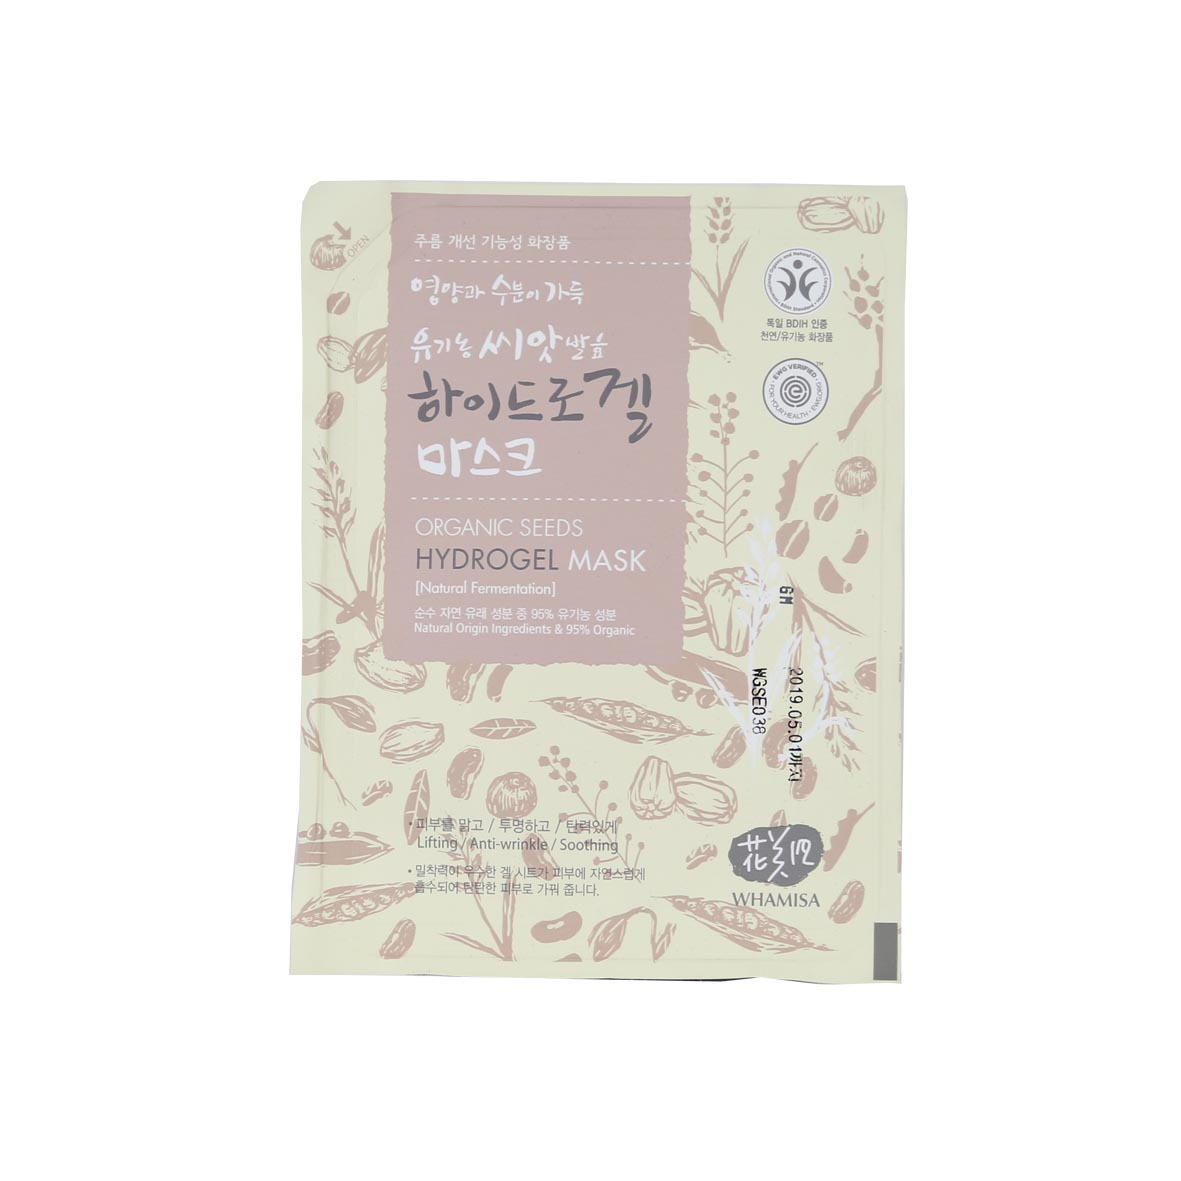 WHAMISA Organic Seeds & Rice Fermented Hydrogel Facial Mask